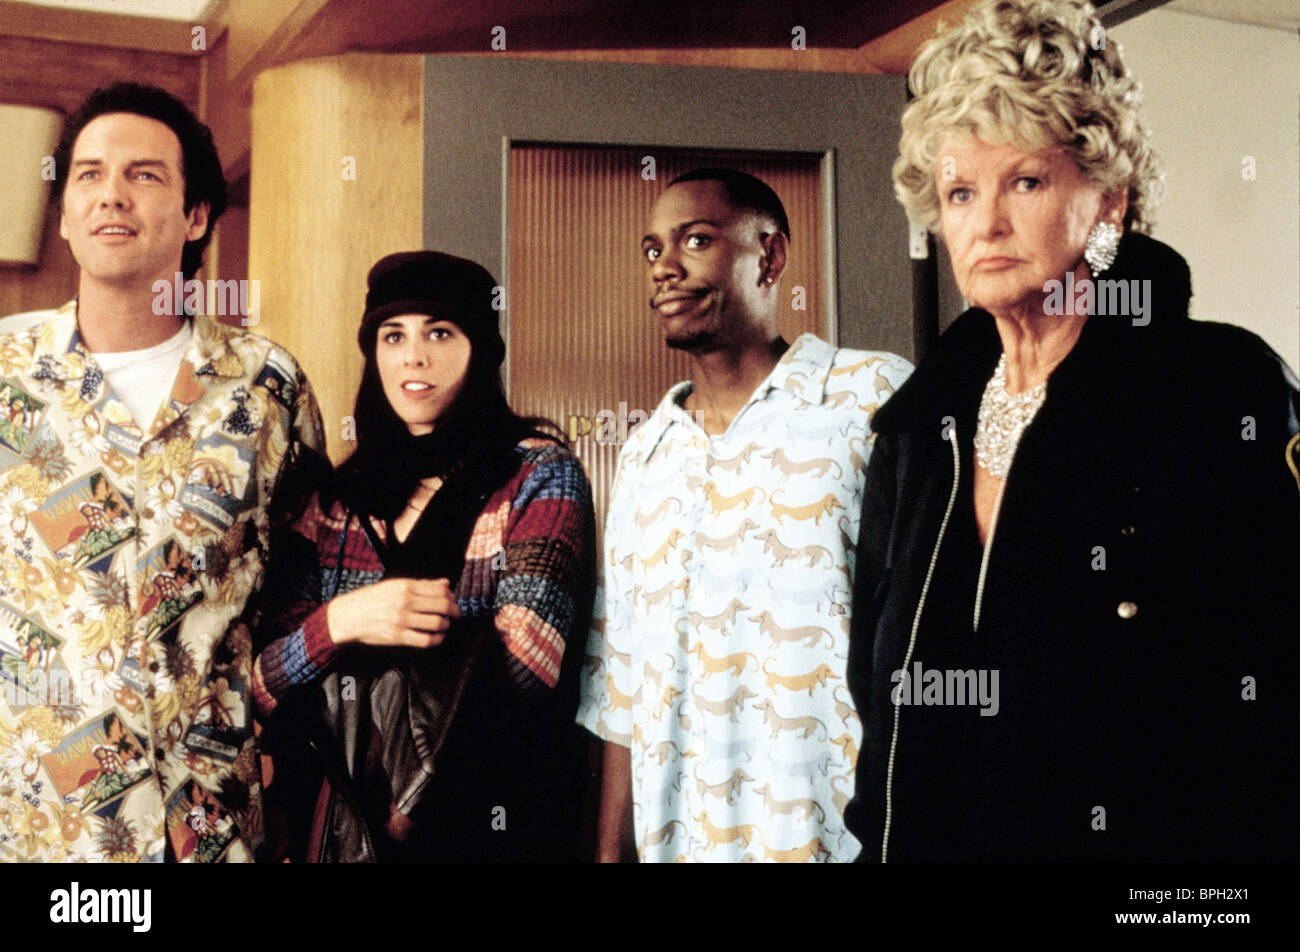 NORM MACDONALD SARAH SILVERMAN DAVE CHAPPELLE & ELAINE STRITCH SCREWED (2000) - Stock Image